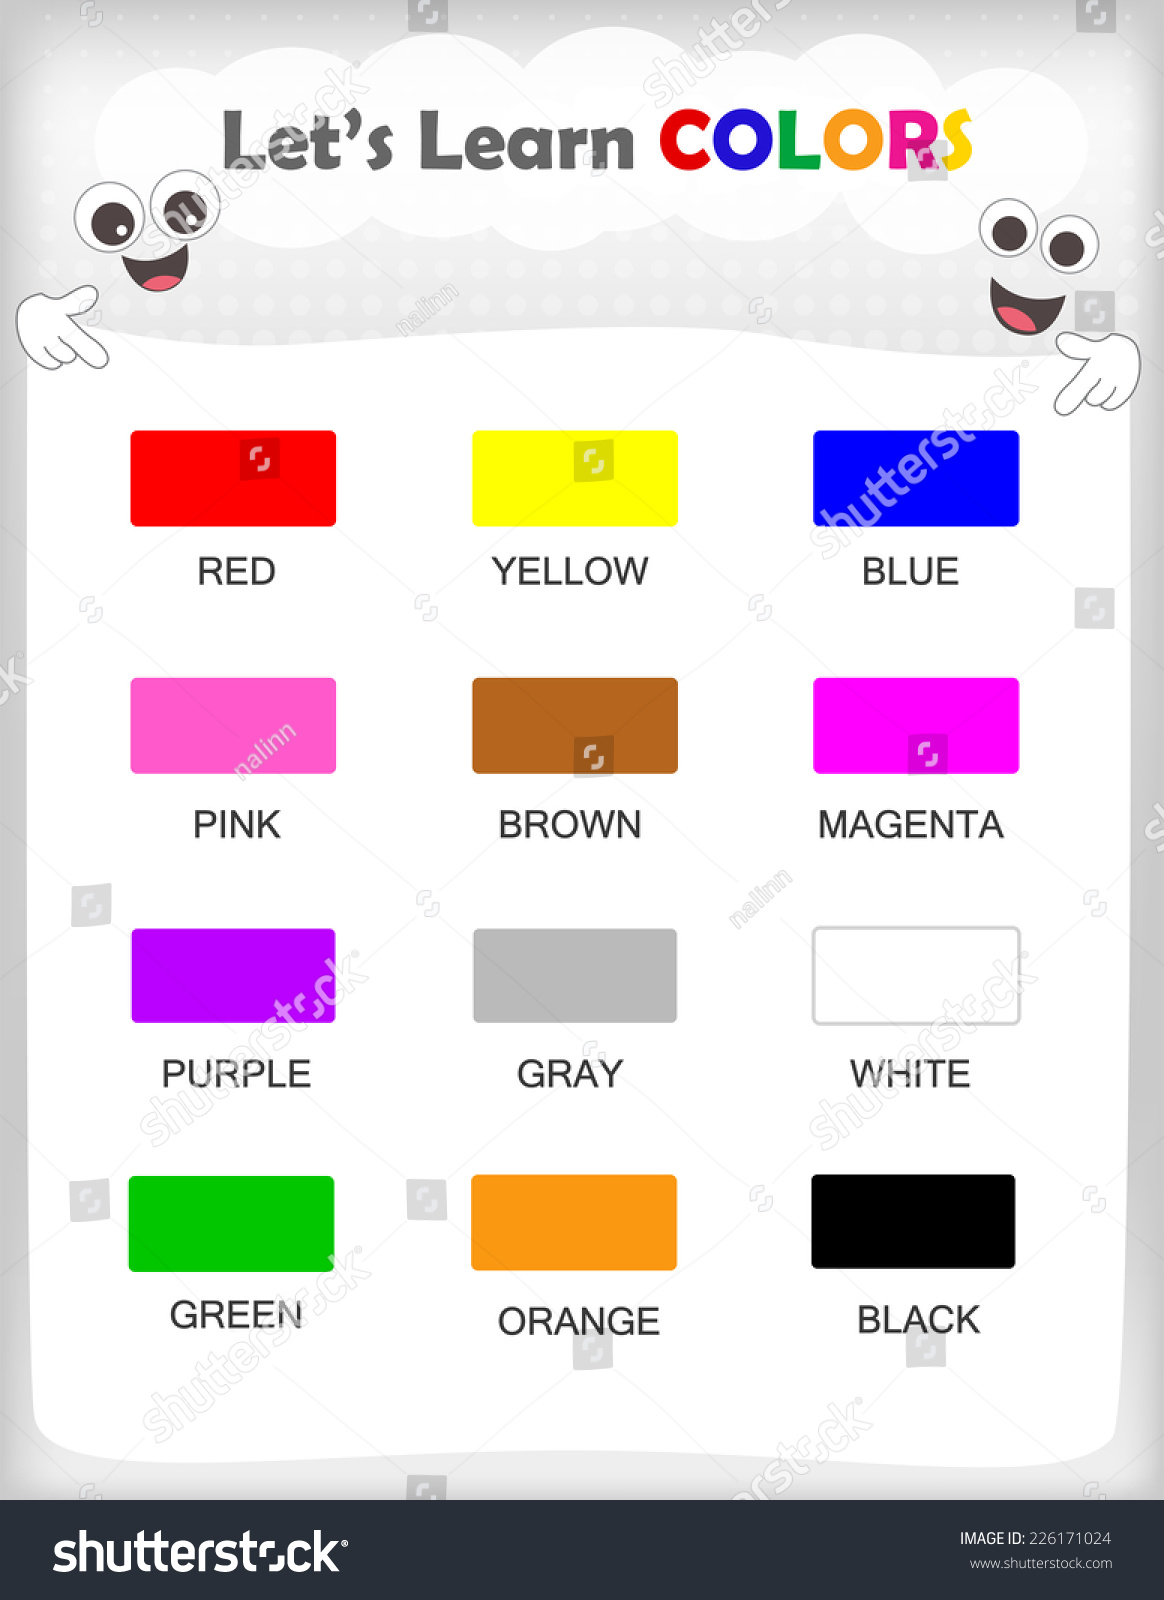 Printable Kids Learning Sheet With 12 Different Colors And